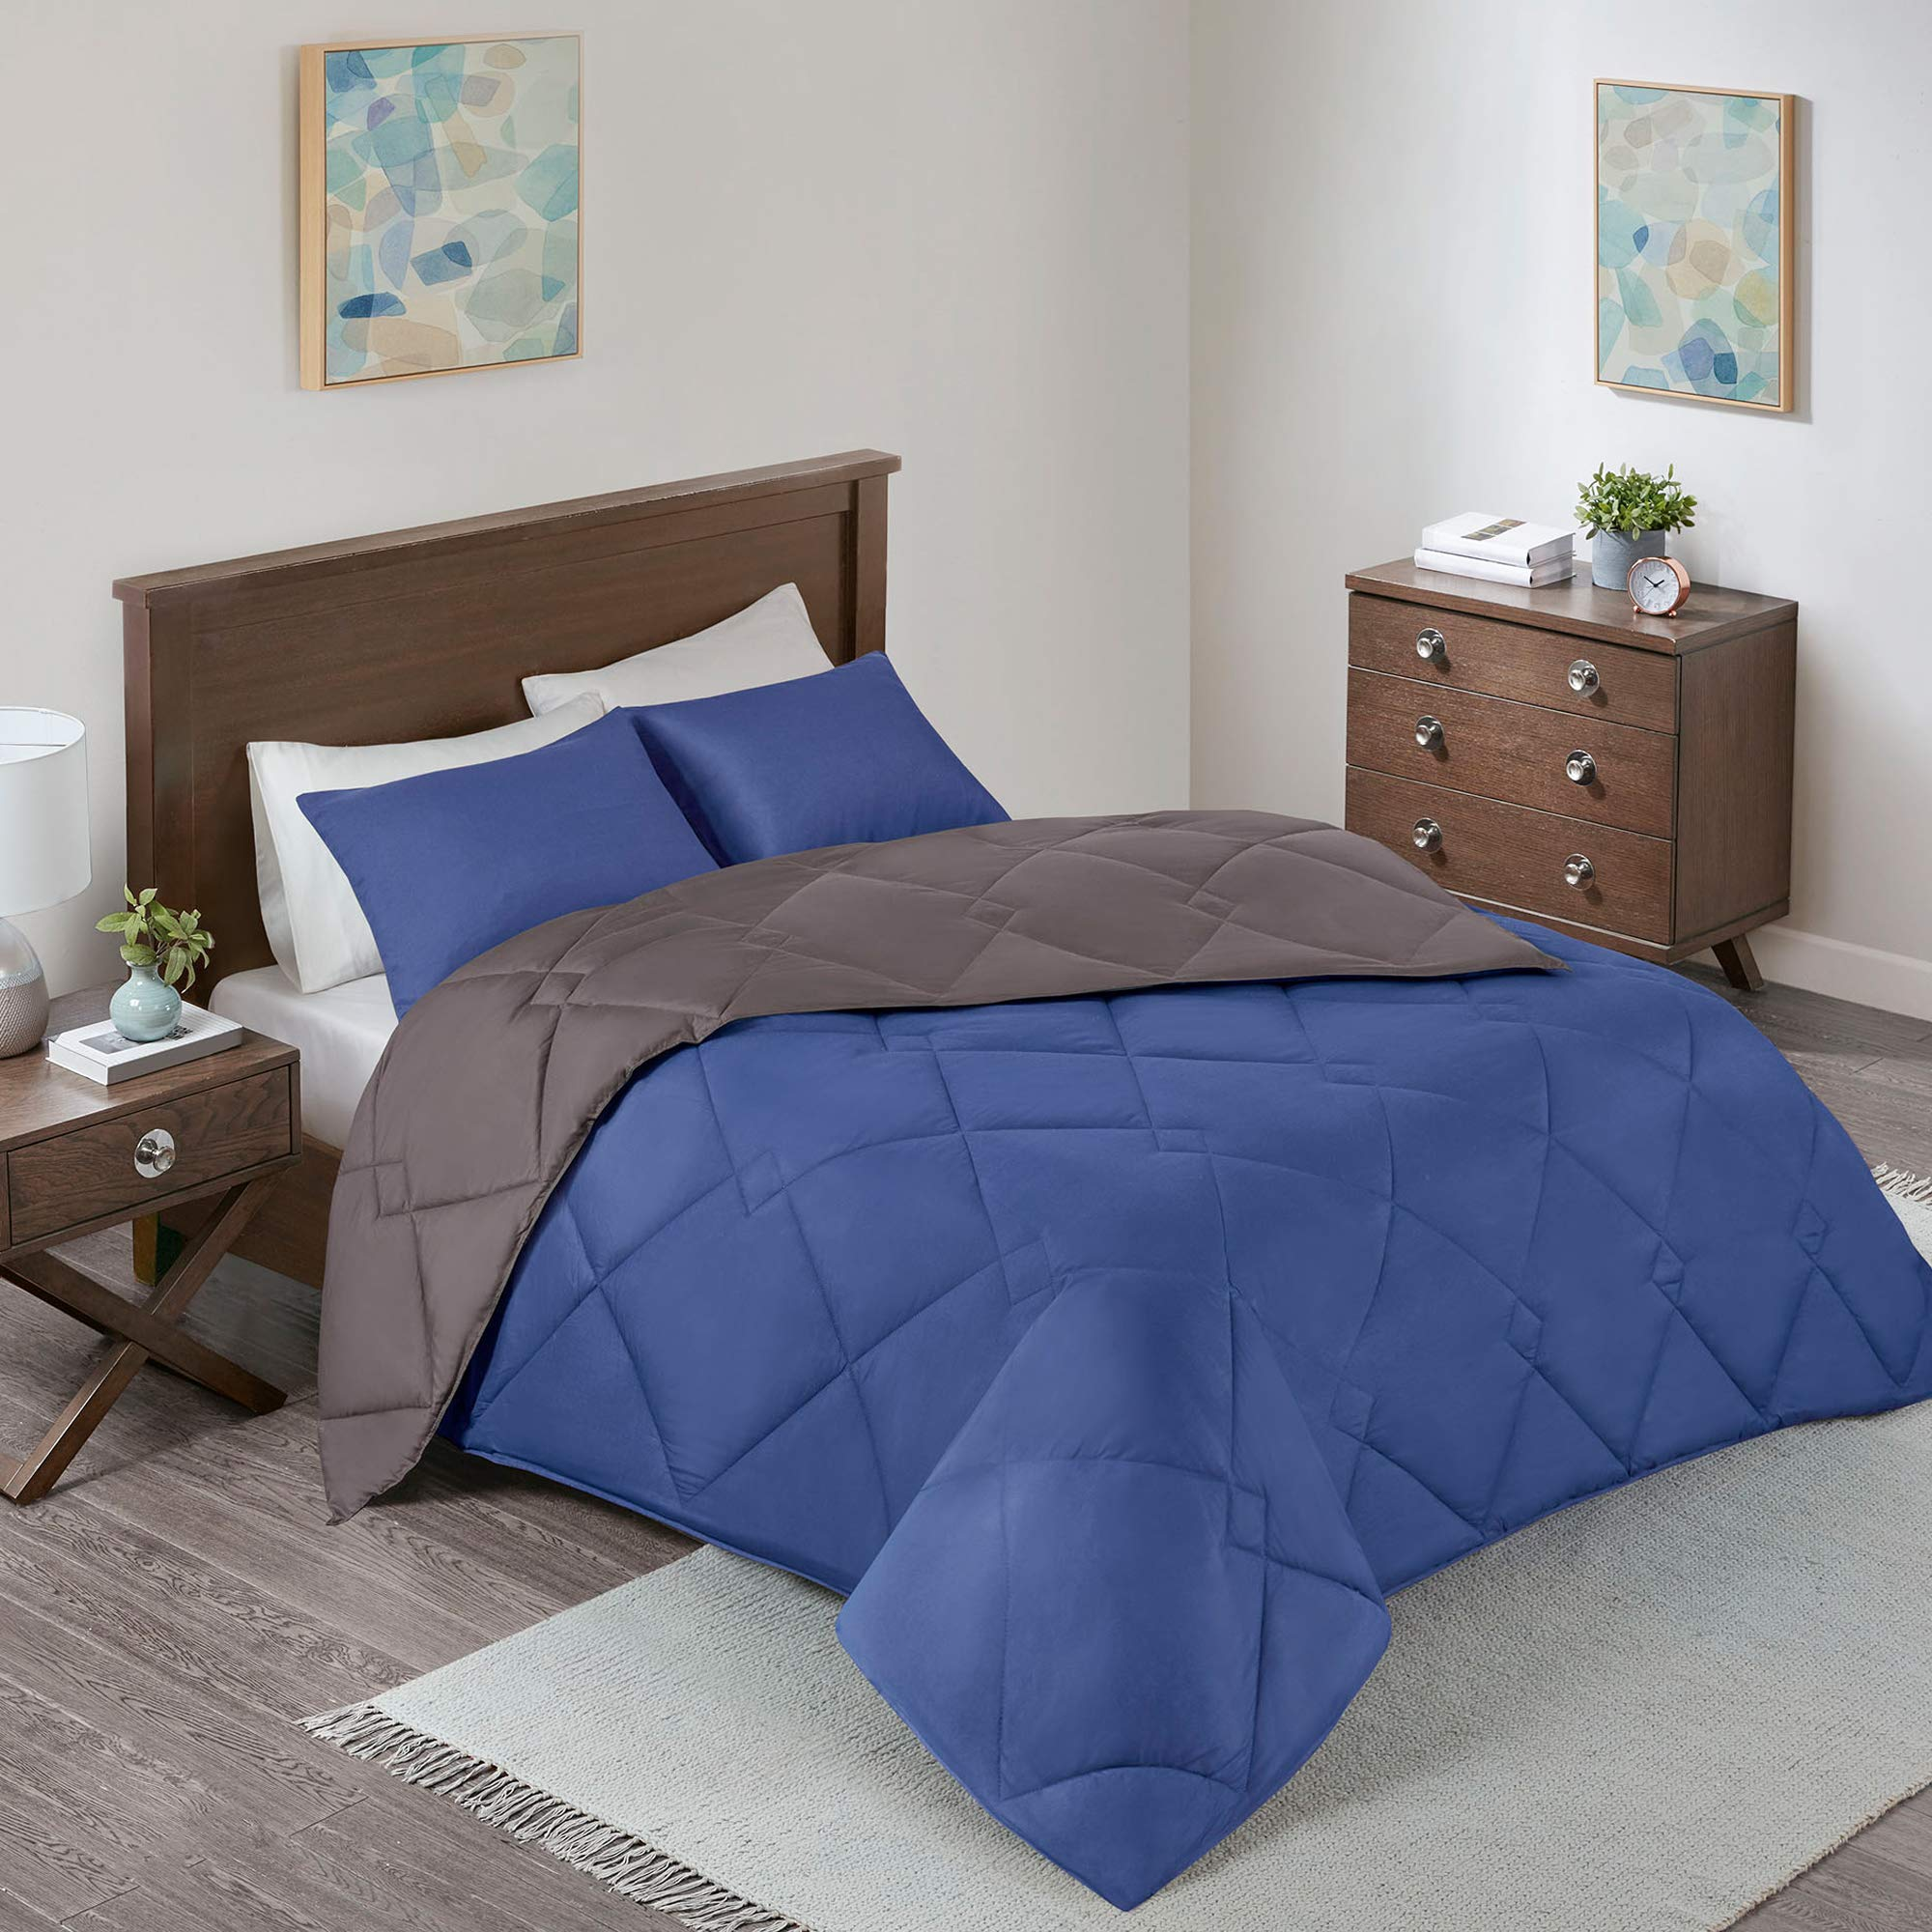 Comfort Spaces Vixie 3 Piece Comforter Set All Season Reversible Goose Down Alternative Stitched Geometrical Pattern Bedding, Full/Queen, Navy/Charcoal